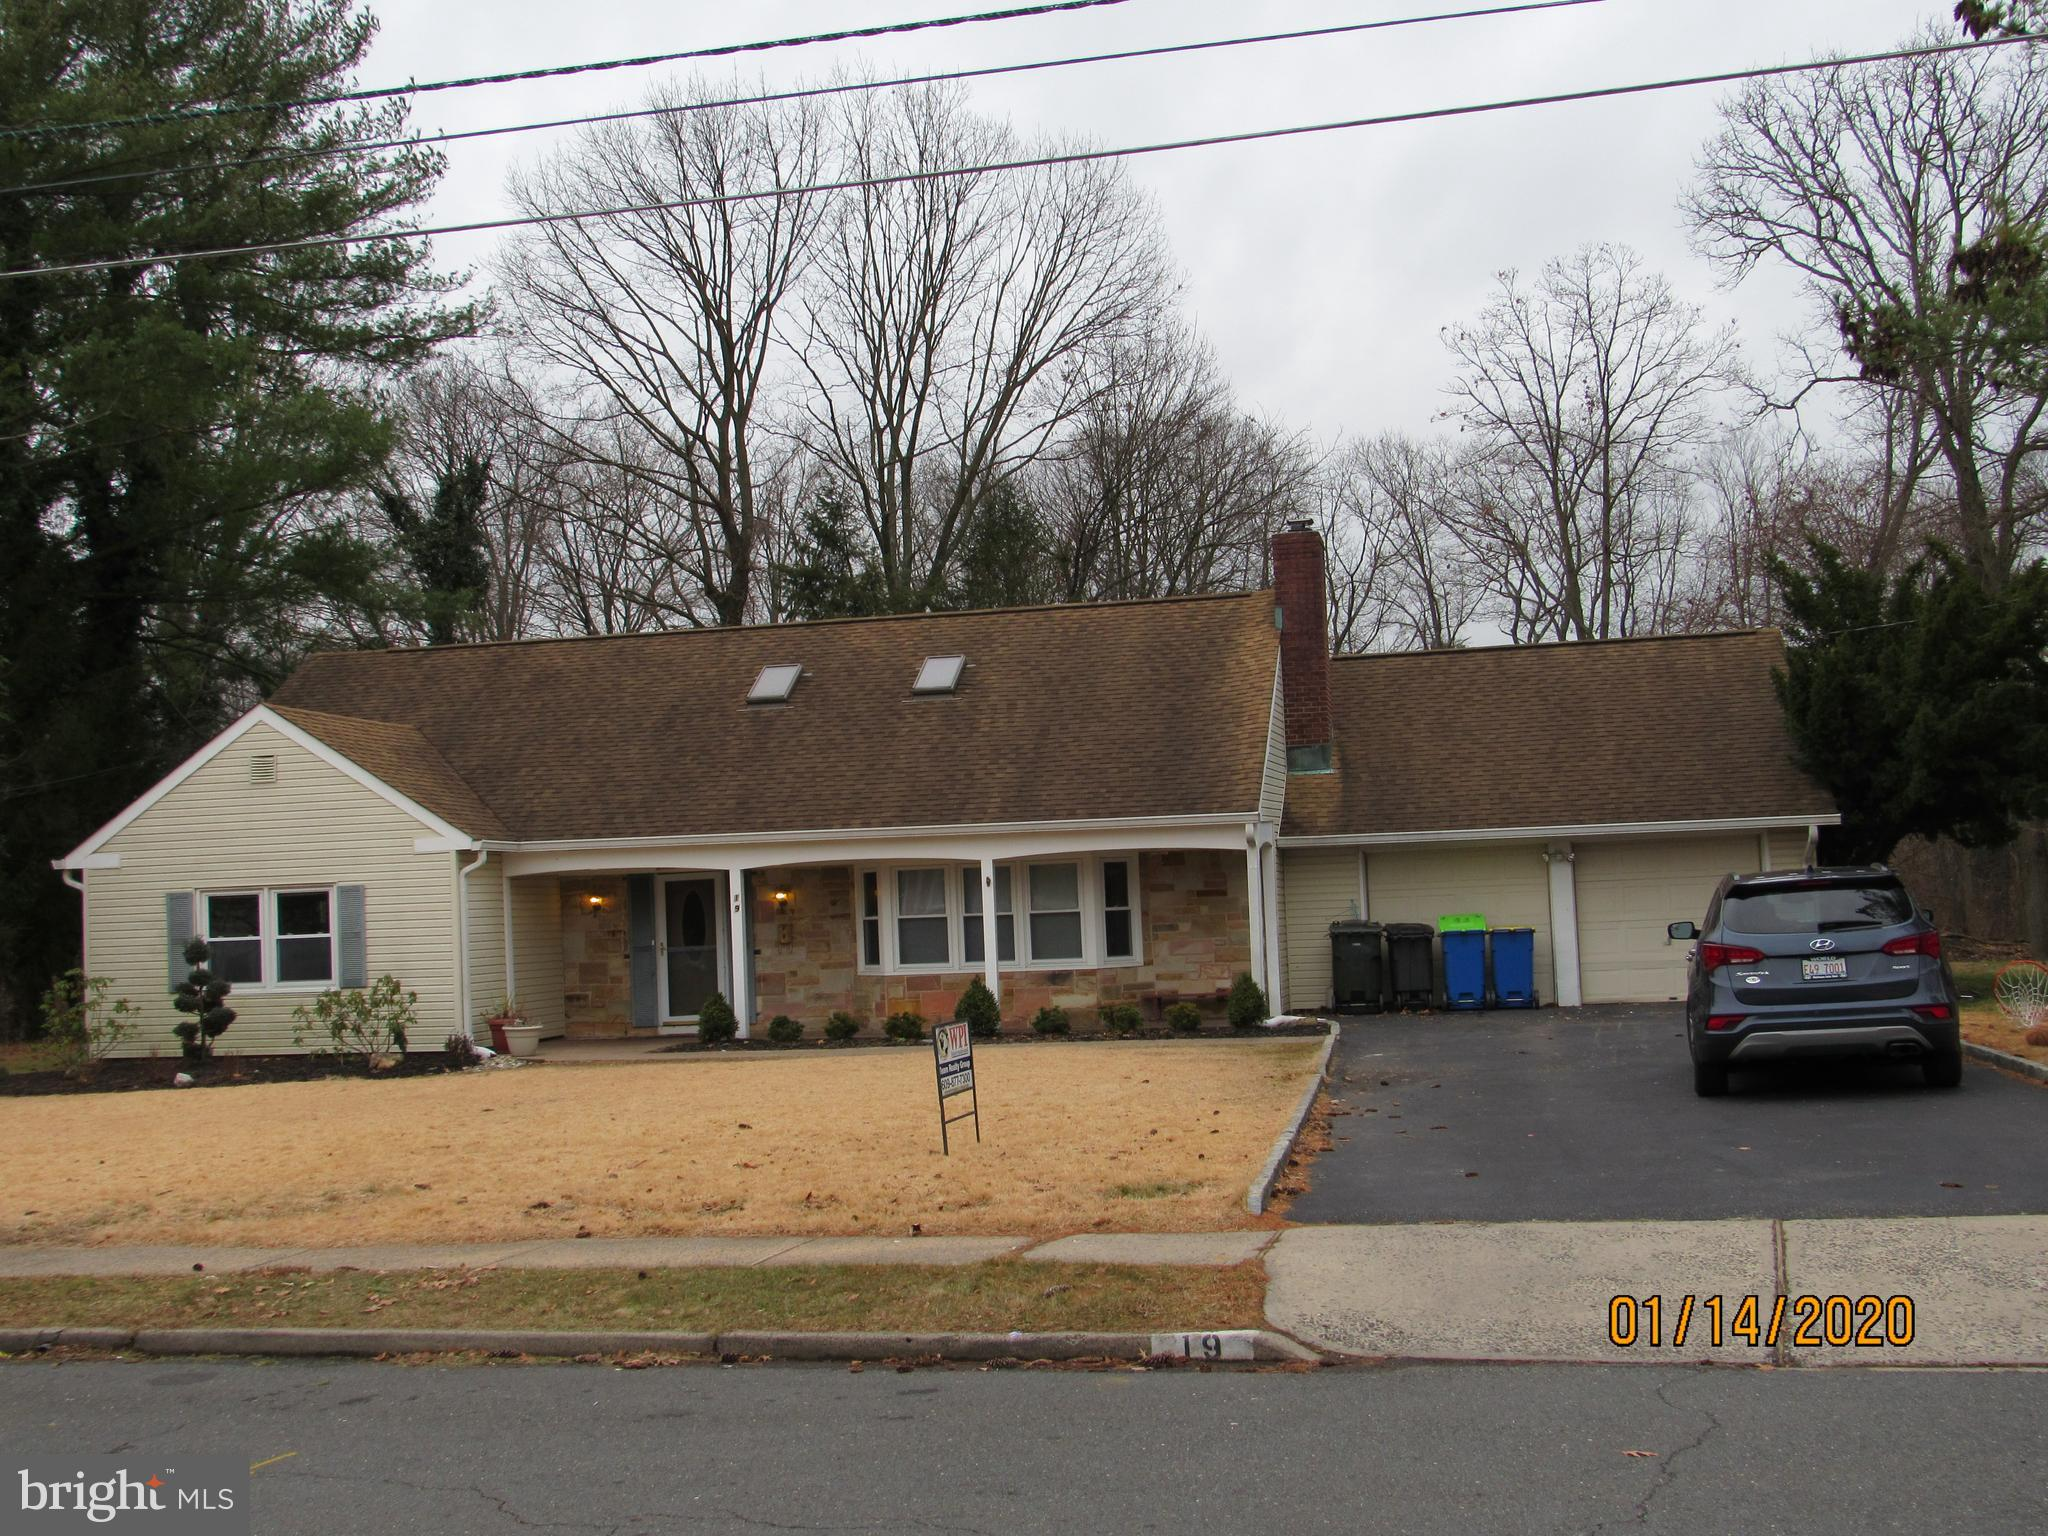 19 TUNNELL ROAD, SOMERSET, NJ 08873